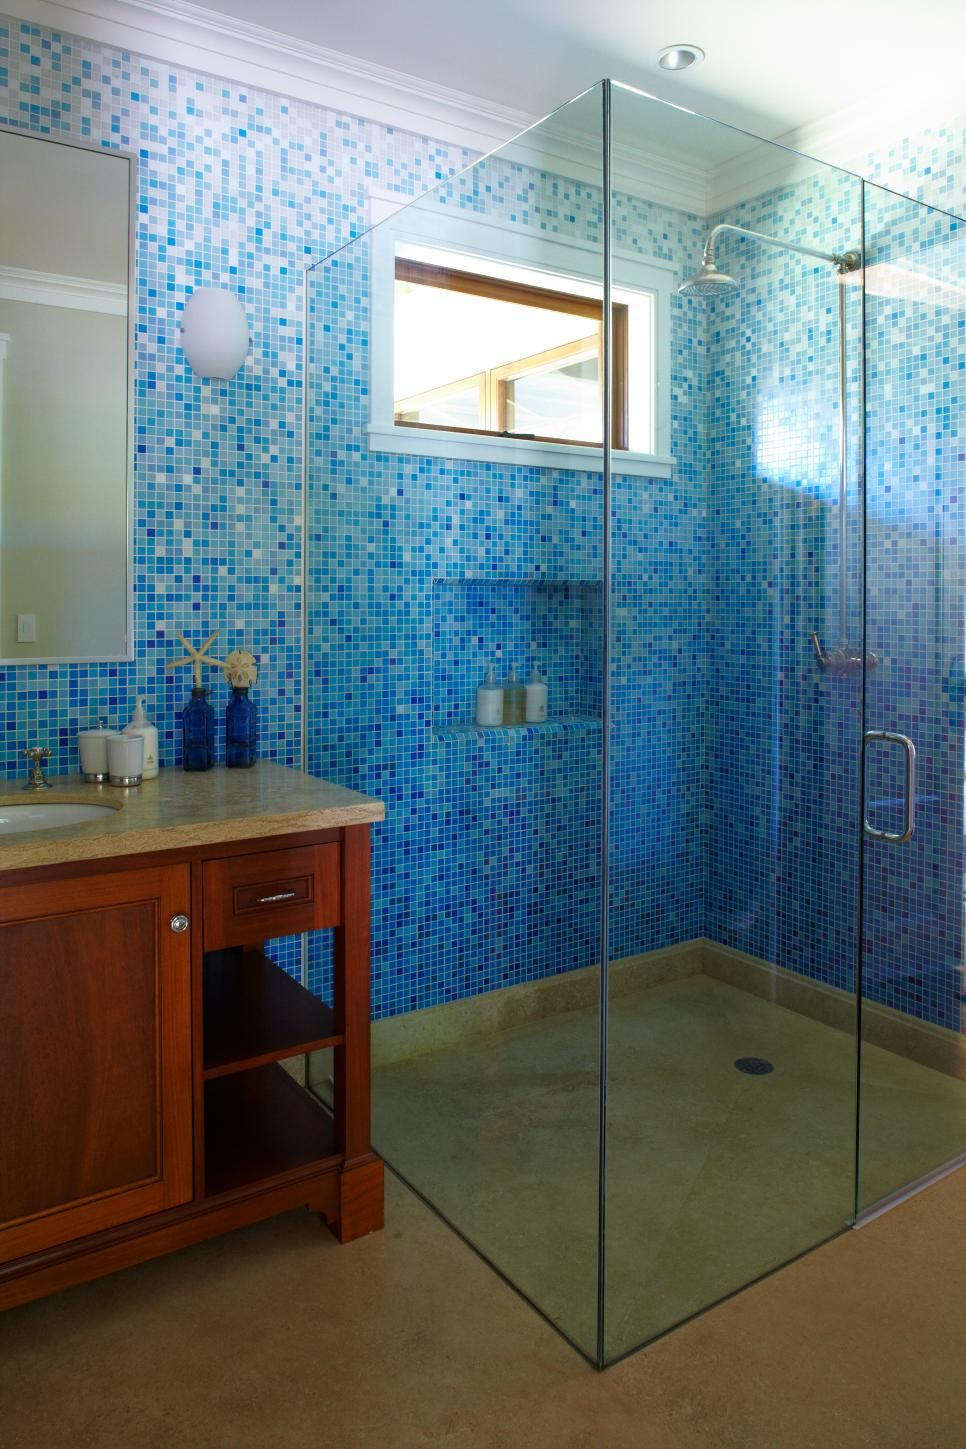 Pictures of Dazzling Showers | Shower installation, Diy network and Hgtv